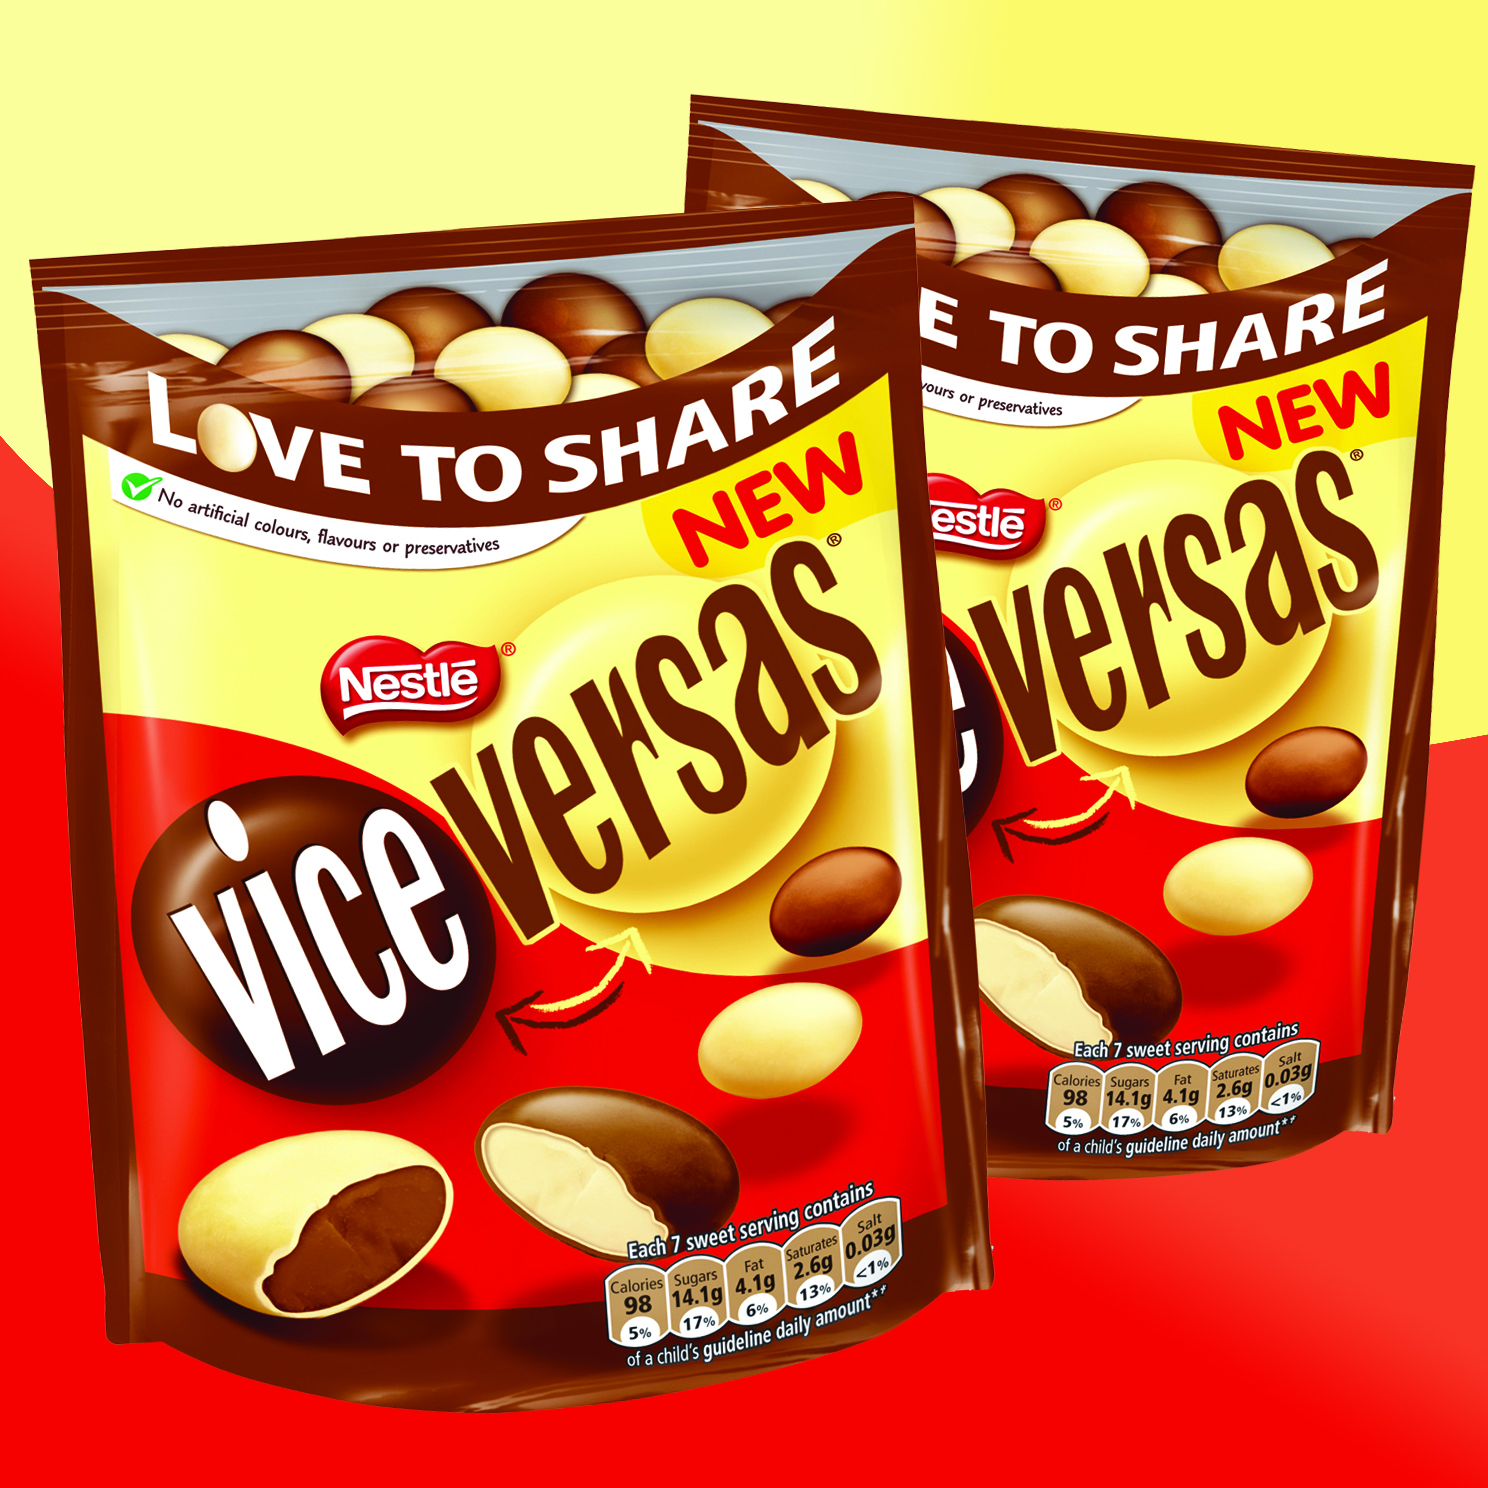 Vice Versas Scottish Local Retailer